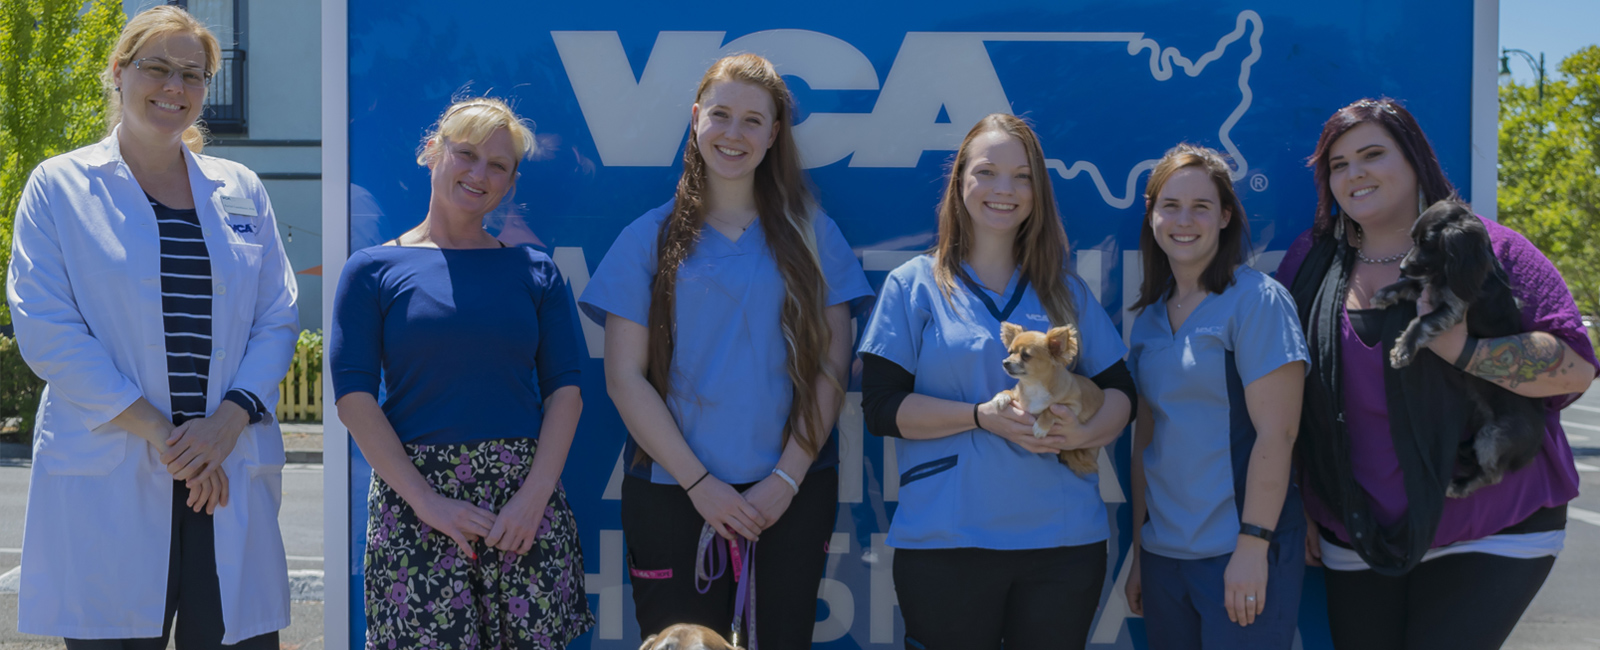 Team Picture of VCA Westside Animal Hospital